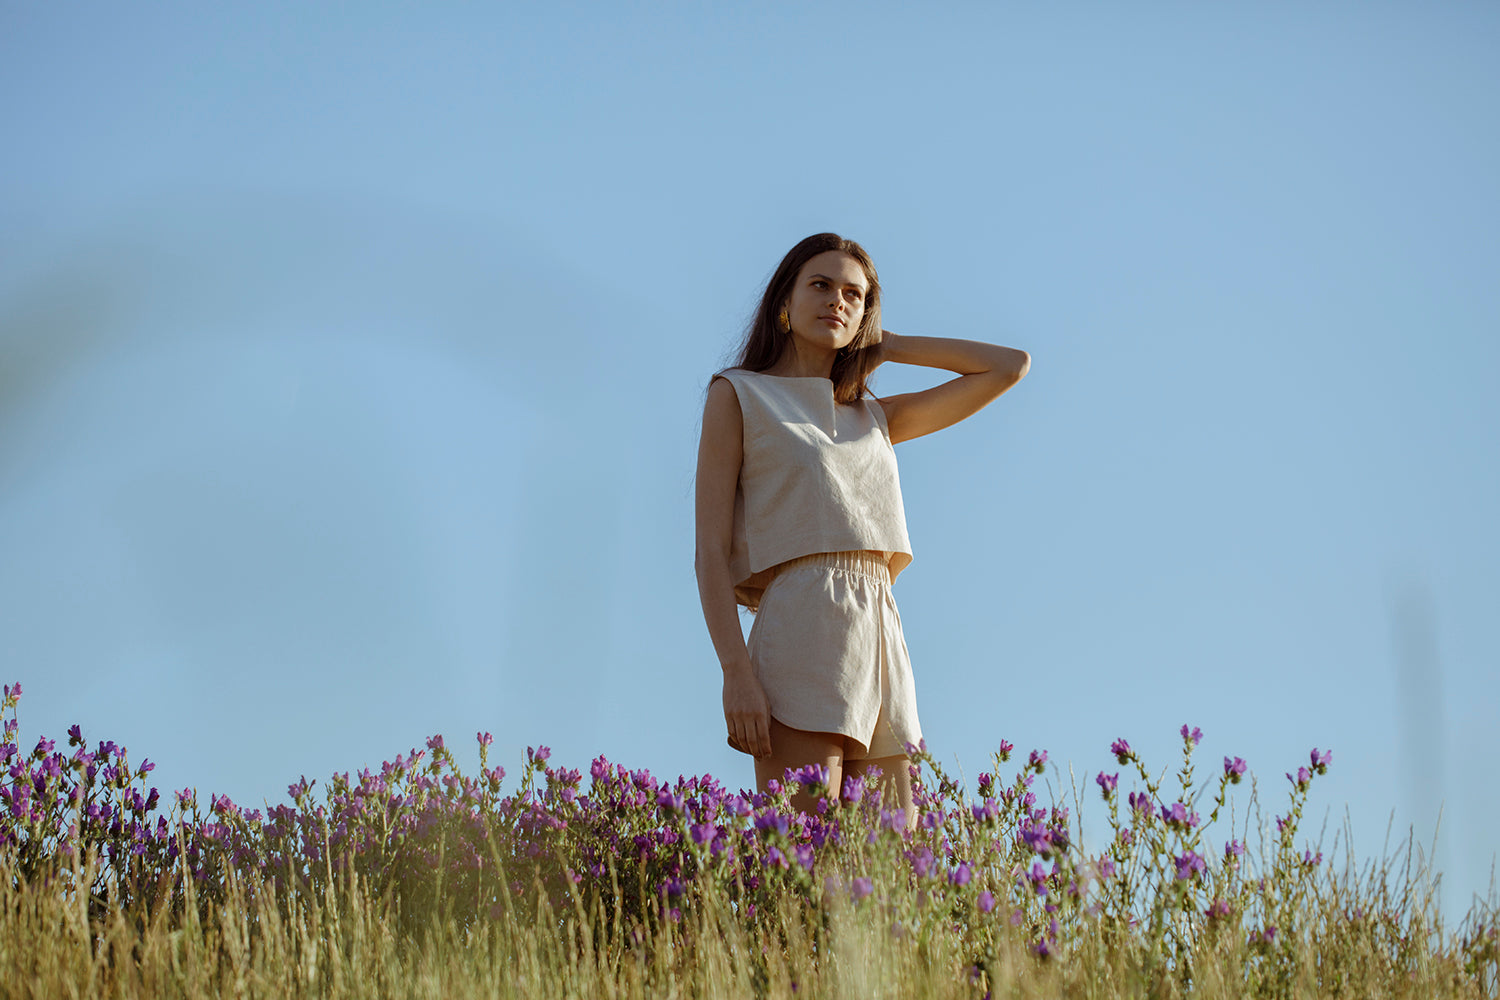 Model wearing Beth top standing in the field